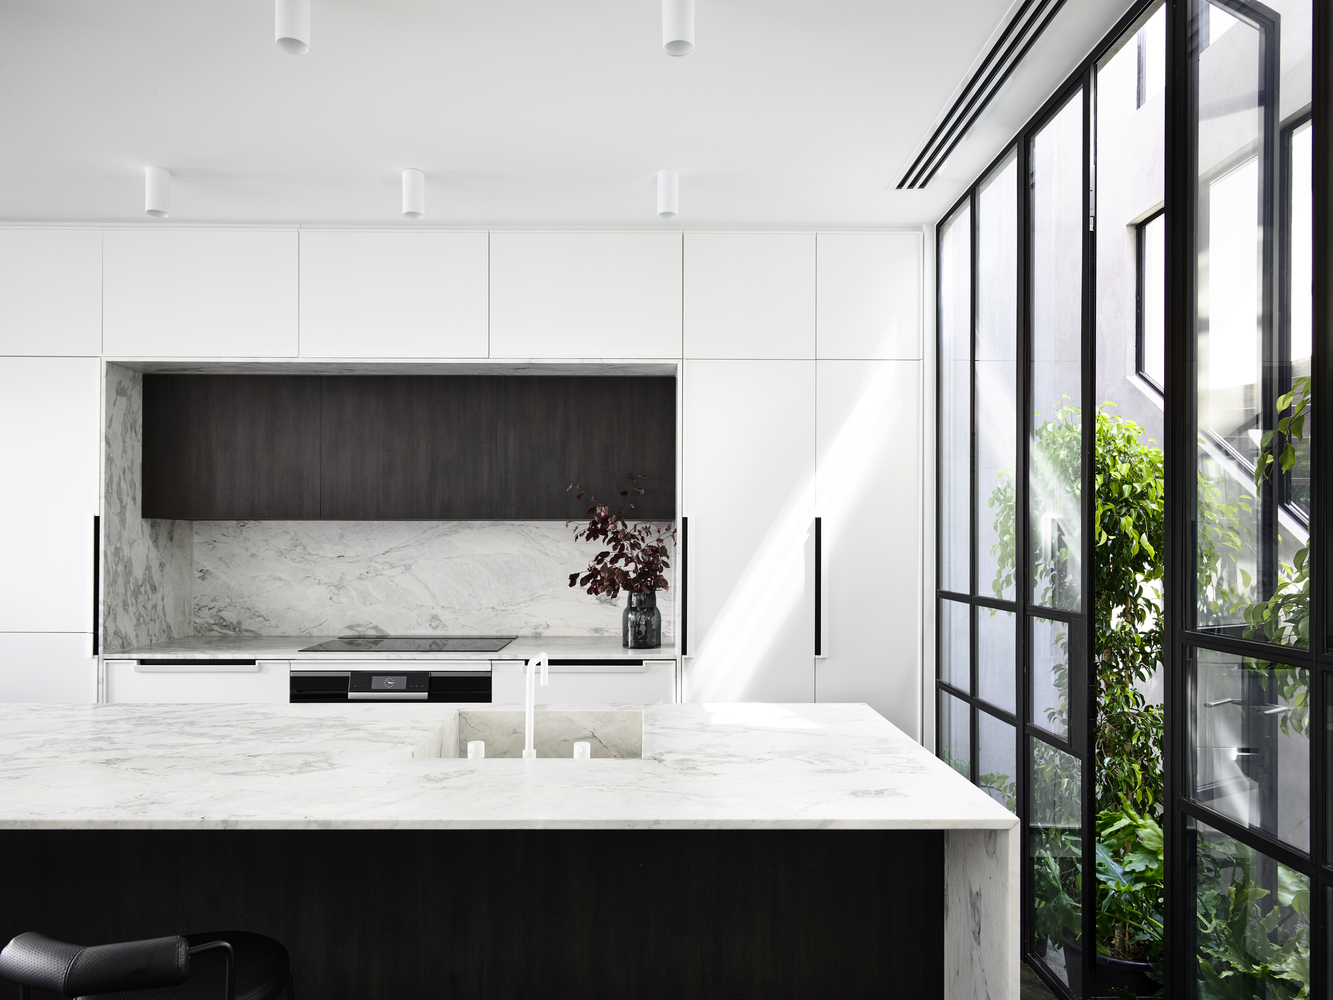 The kitchen is opened to the atrium with fresh greenery and light